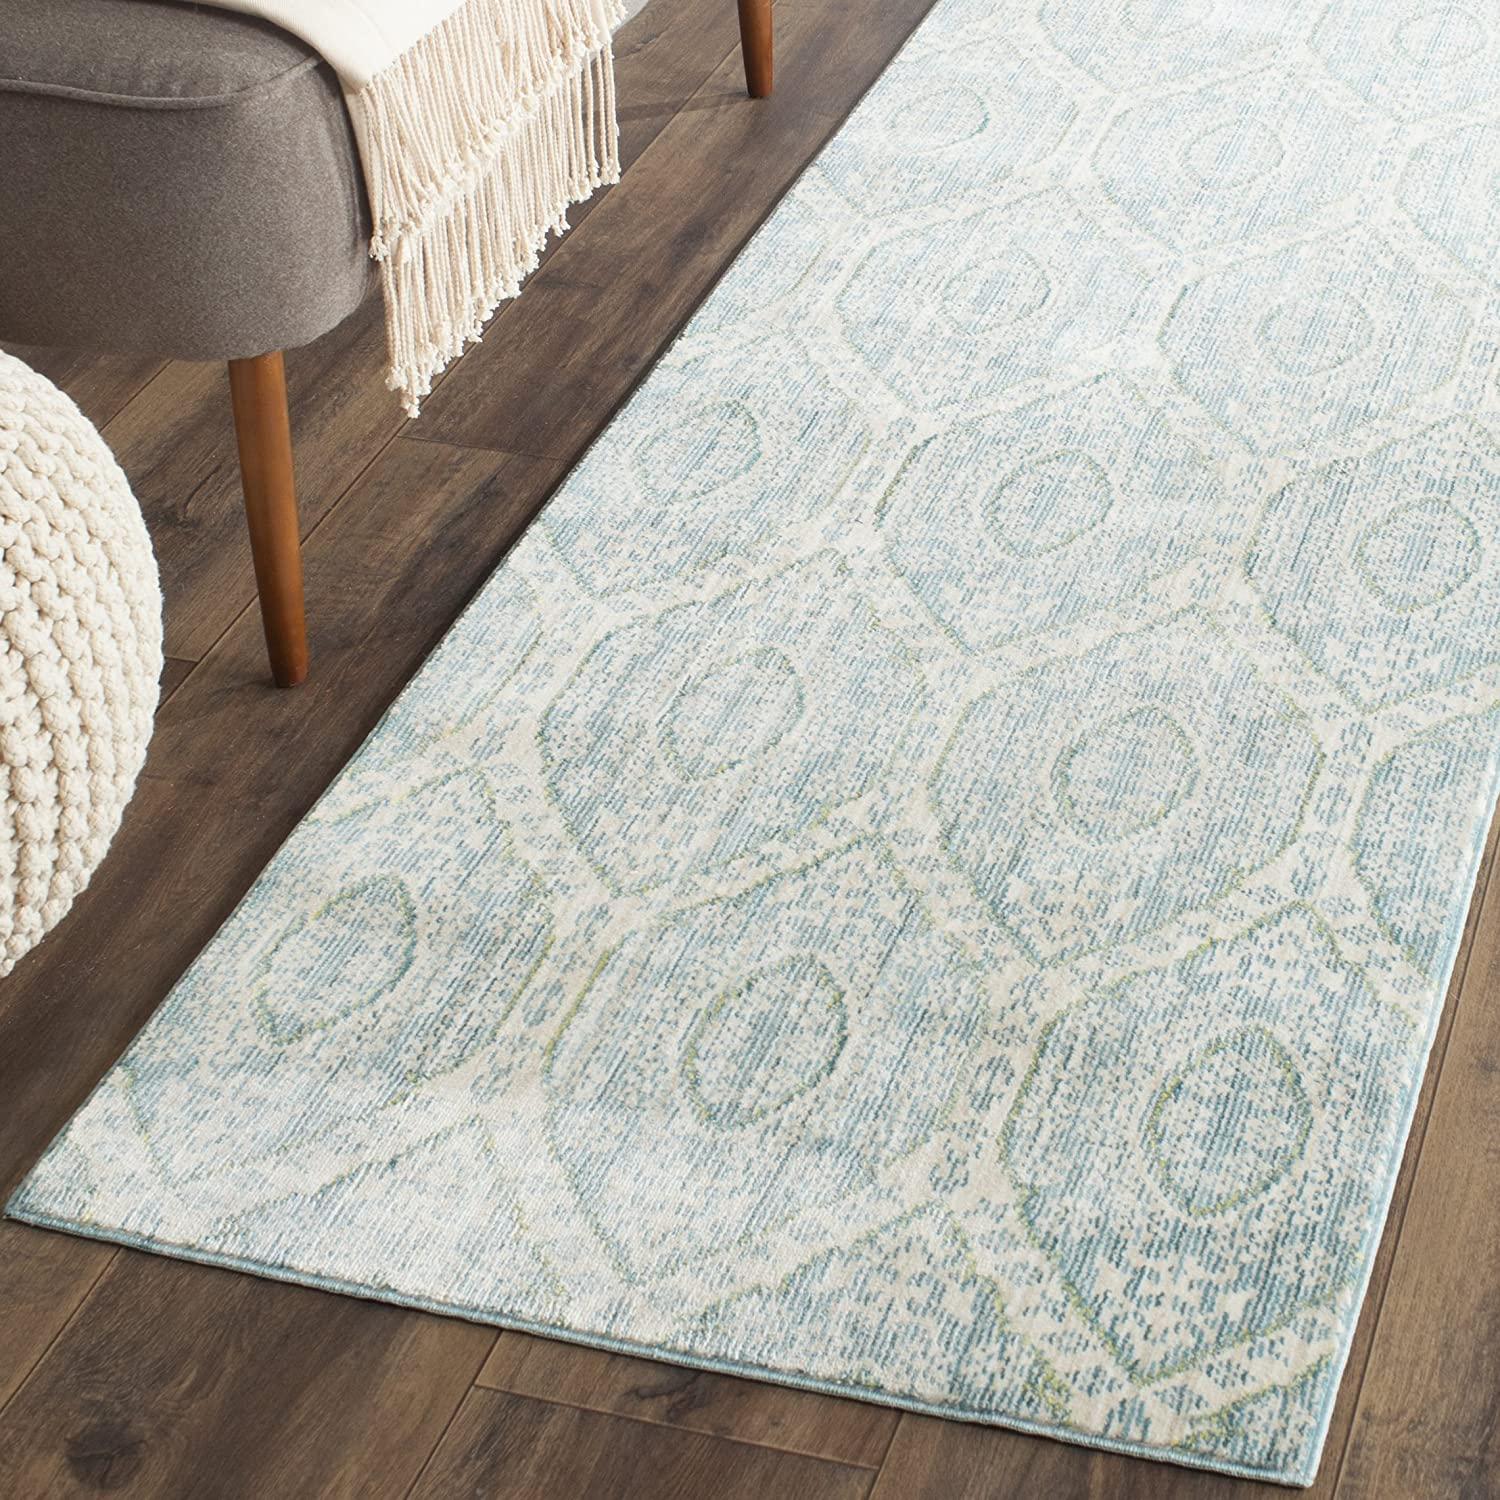 Amazon Com Safavieh Valencia Collection Val206j Boho Chic Distressed Runner 2 3 X 8 Alpine Cream Furniture Decor